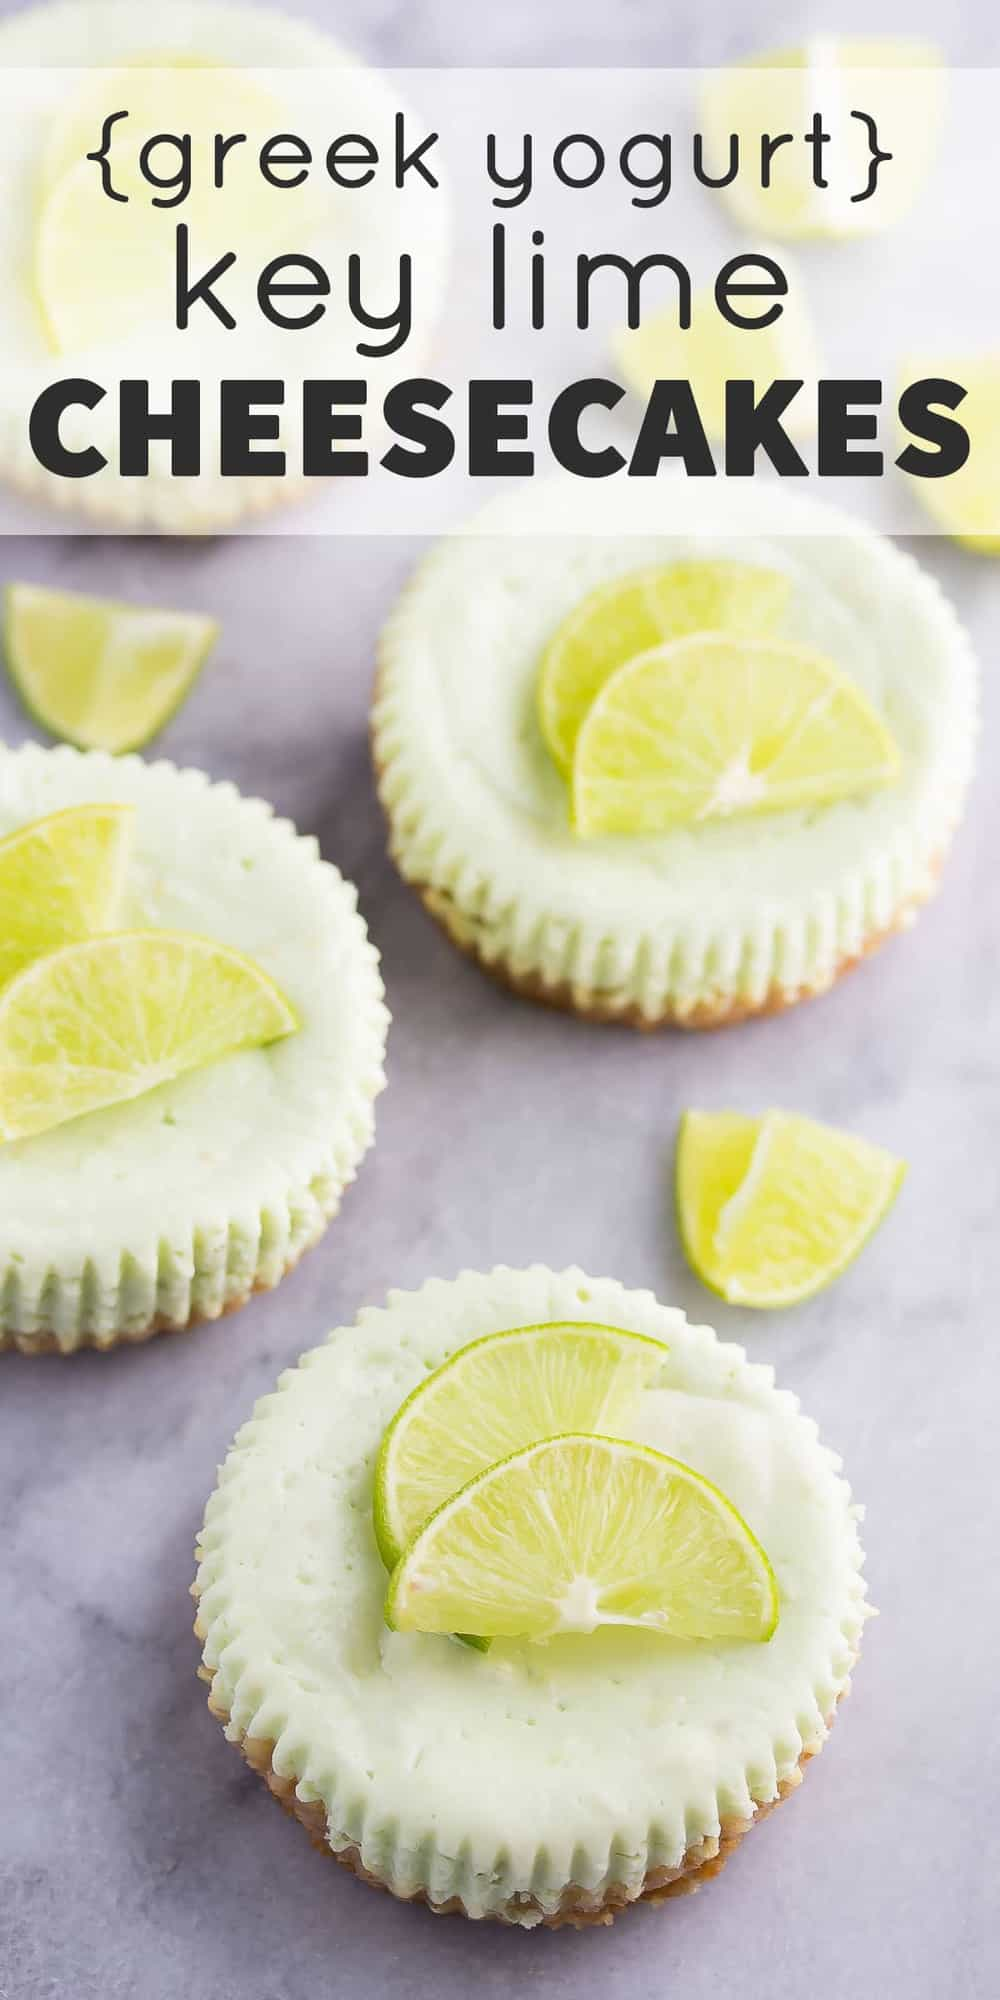 Key Lime Greek Yogurt Cheesecakes, a healthier dessert recipe with only 125 calories per cheesecake!